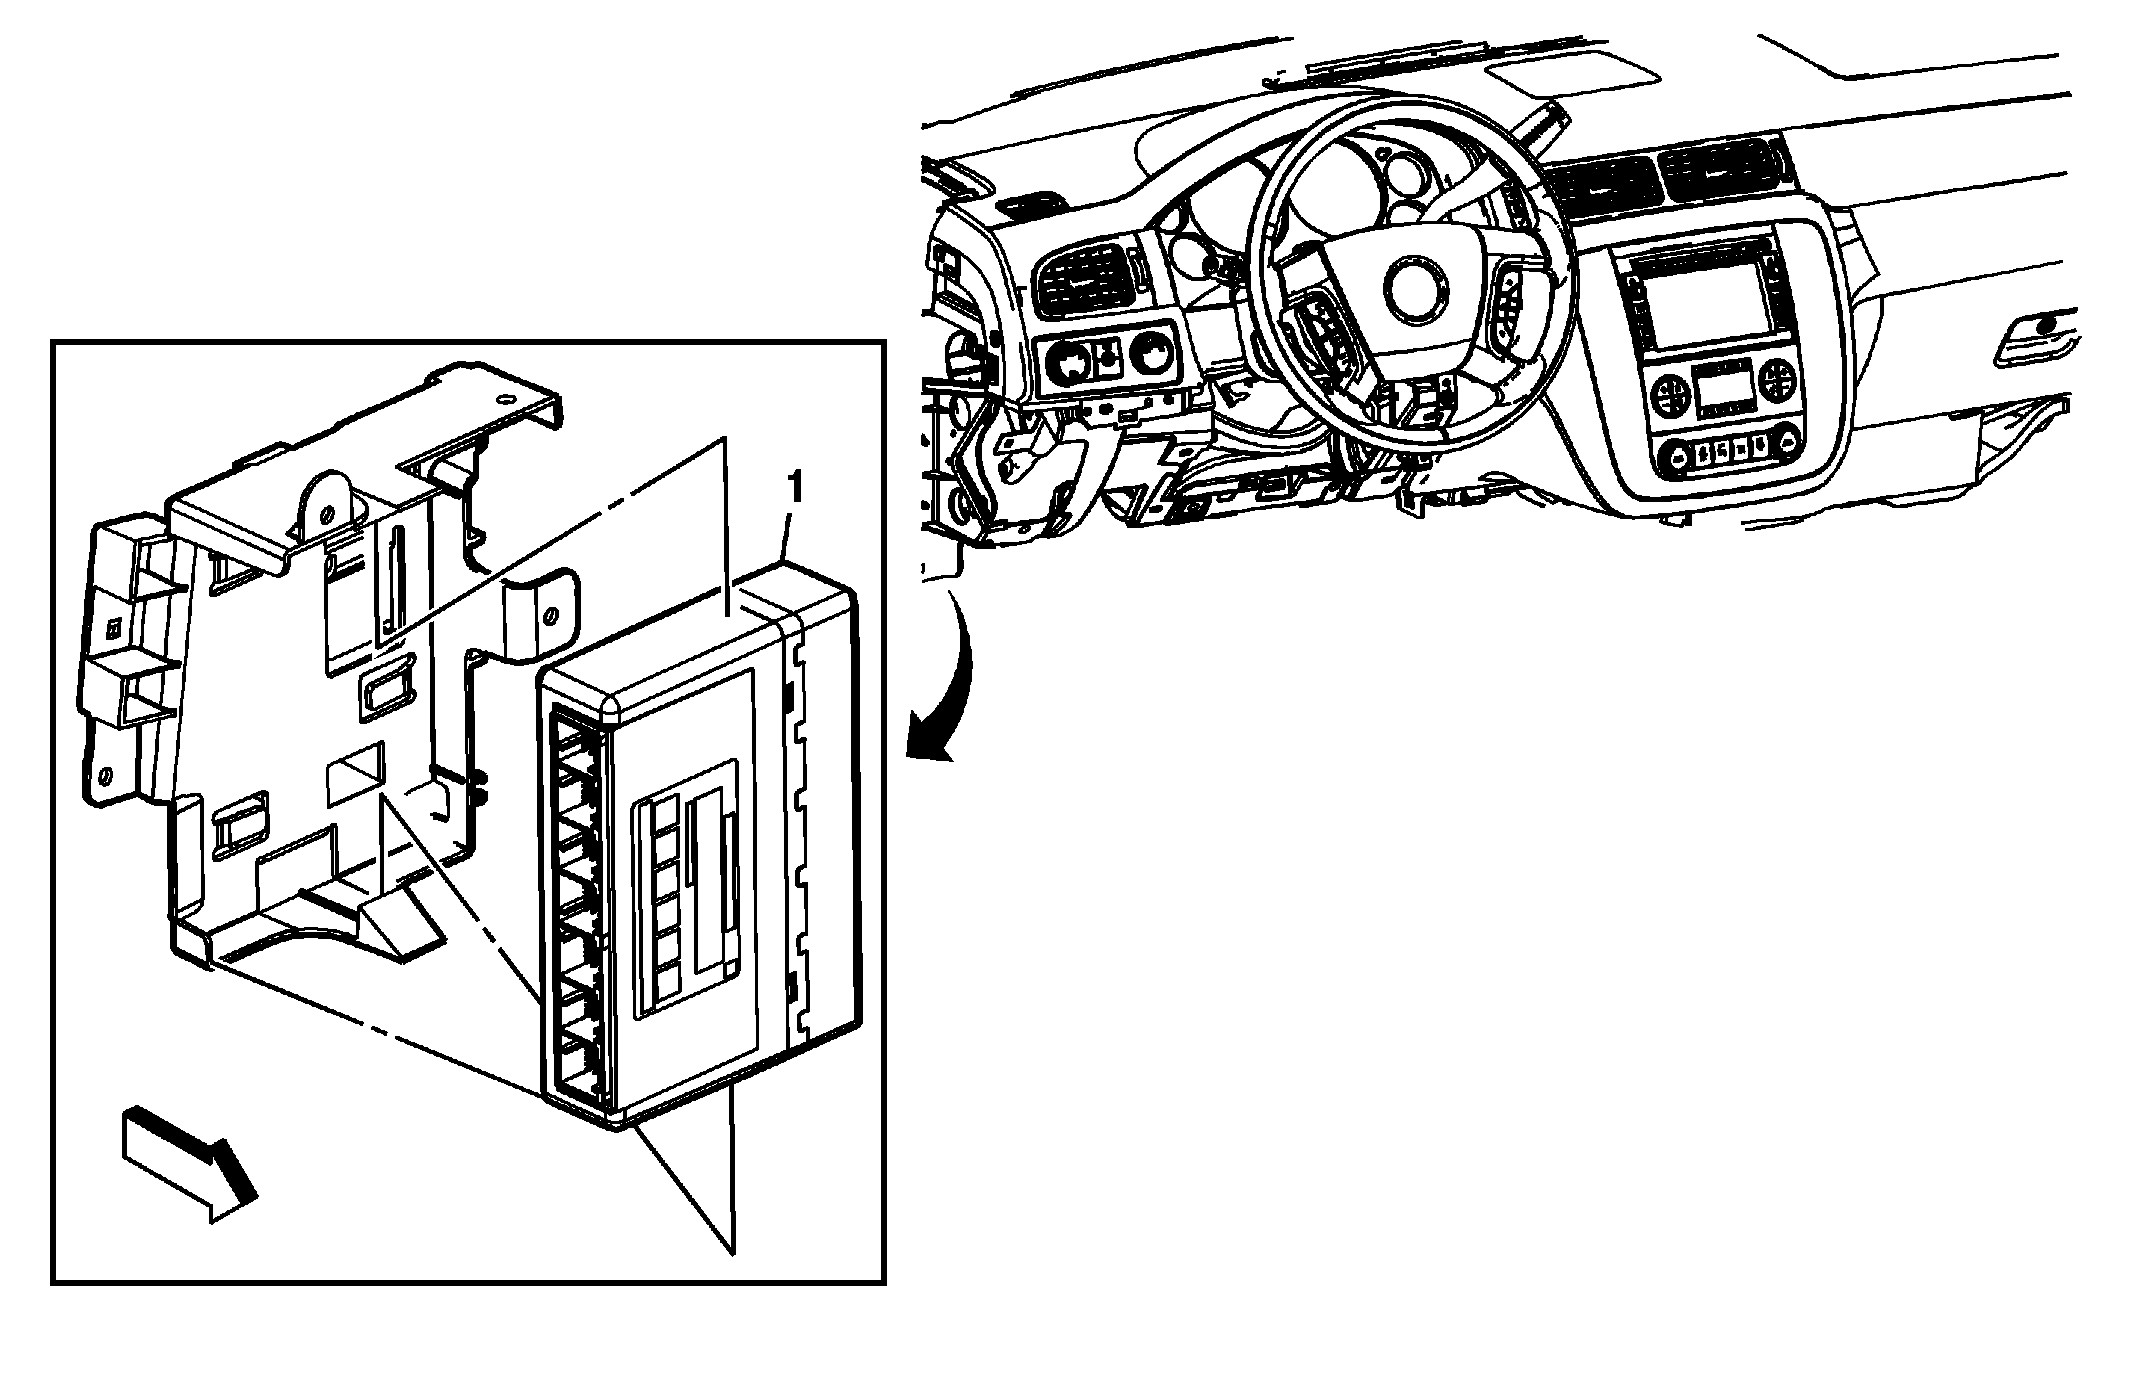 2002 chevy avalanche fuse box diagram html